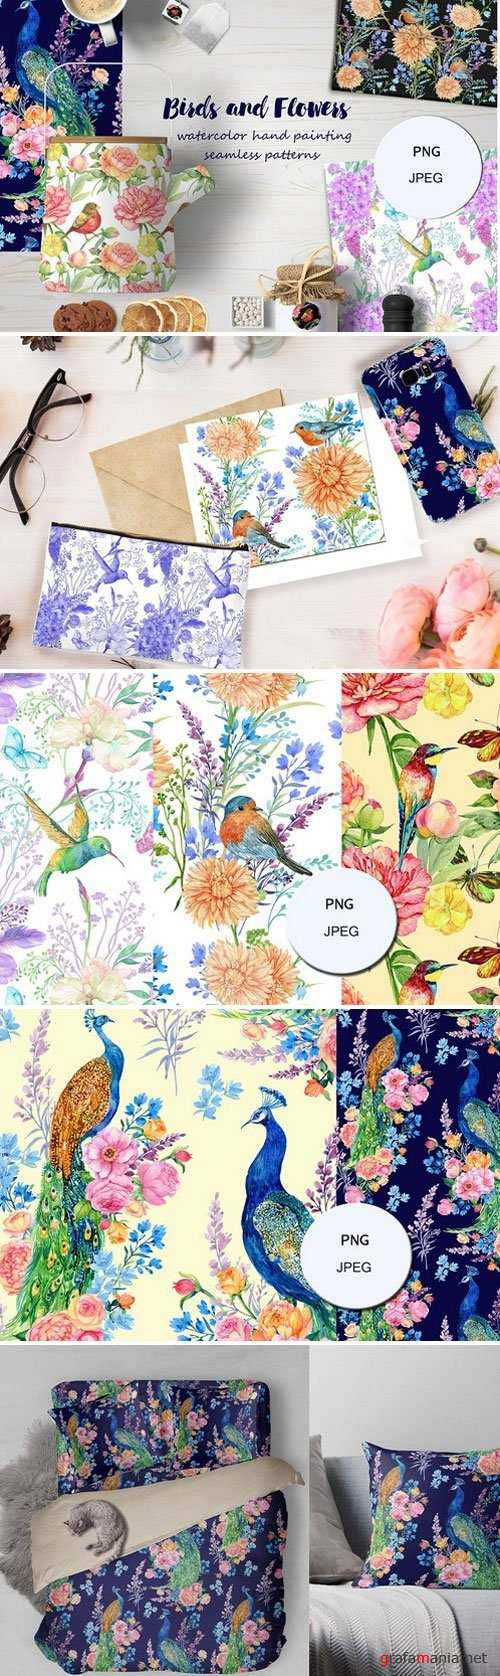 flowers and birds watercolor pattern 1887087